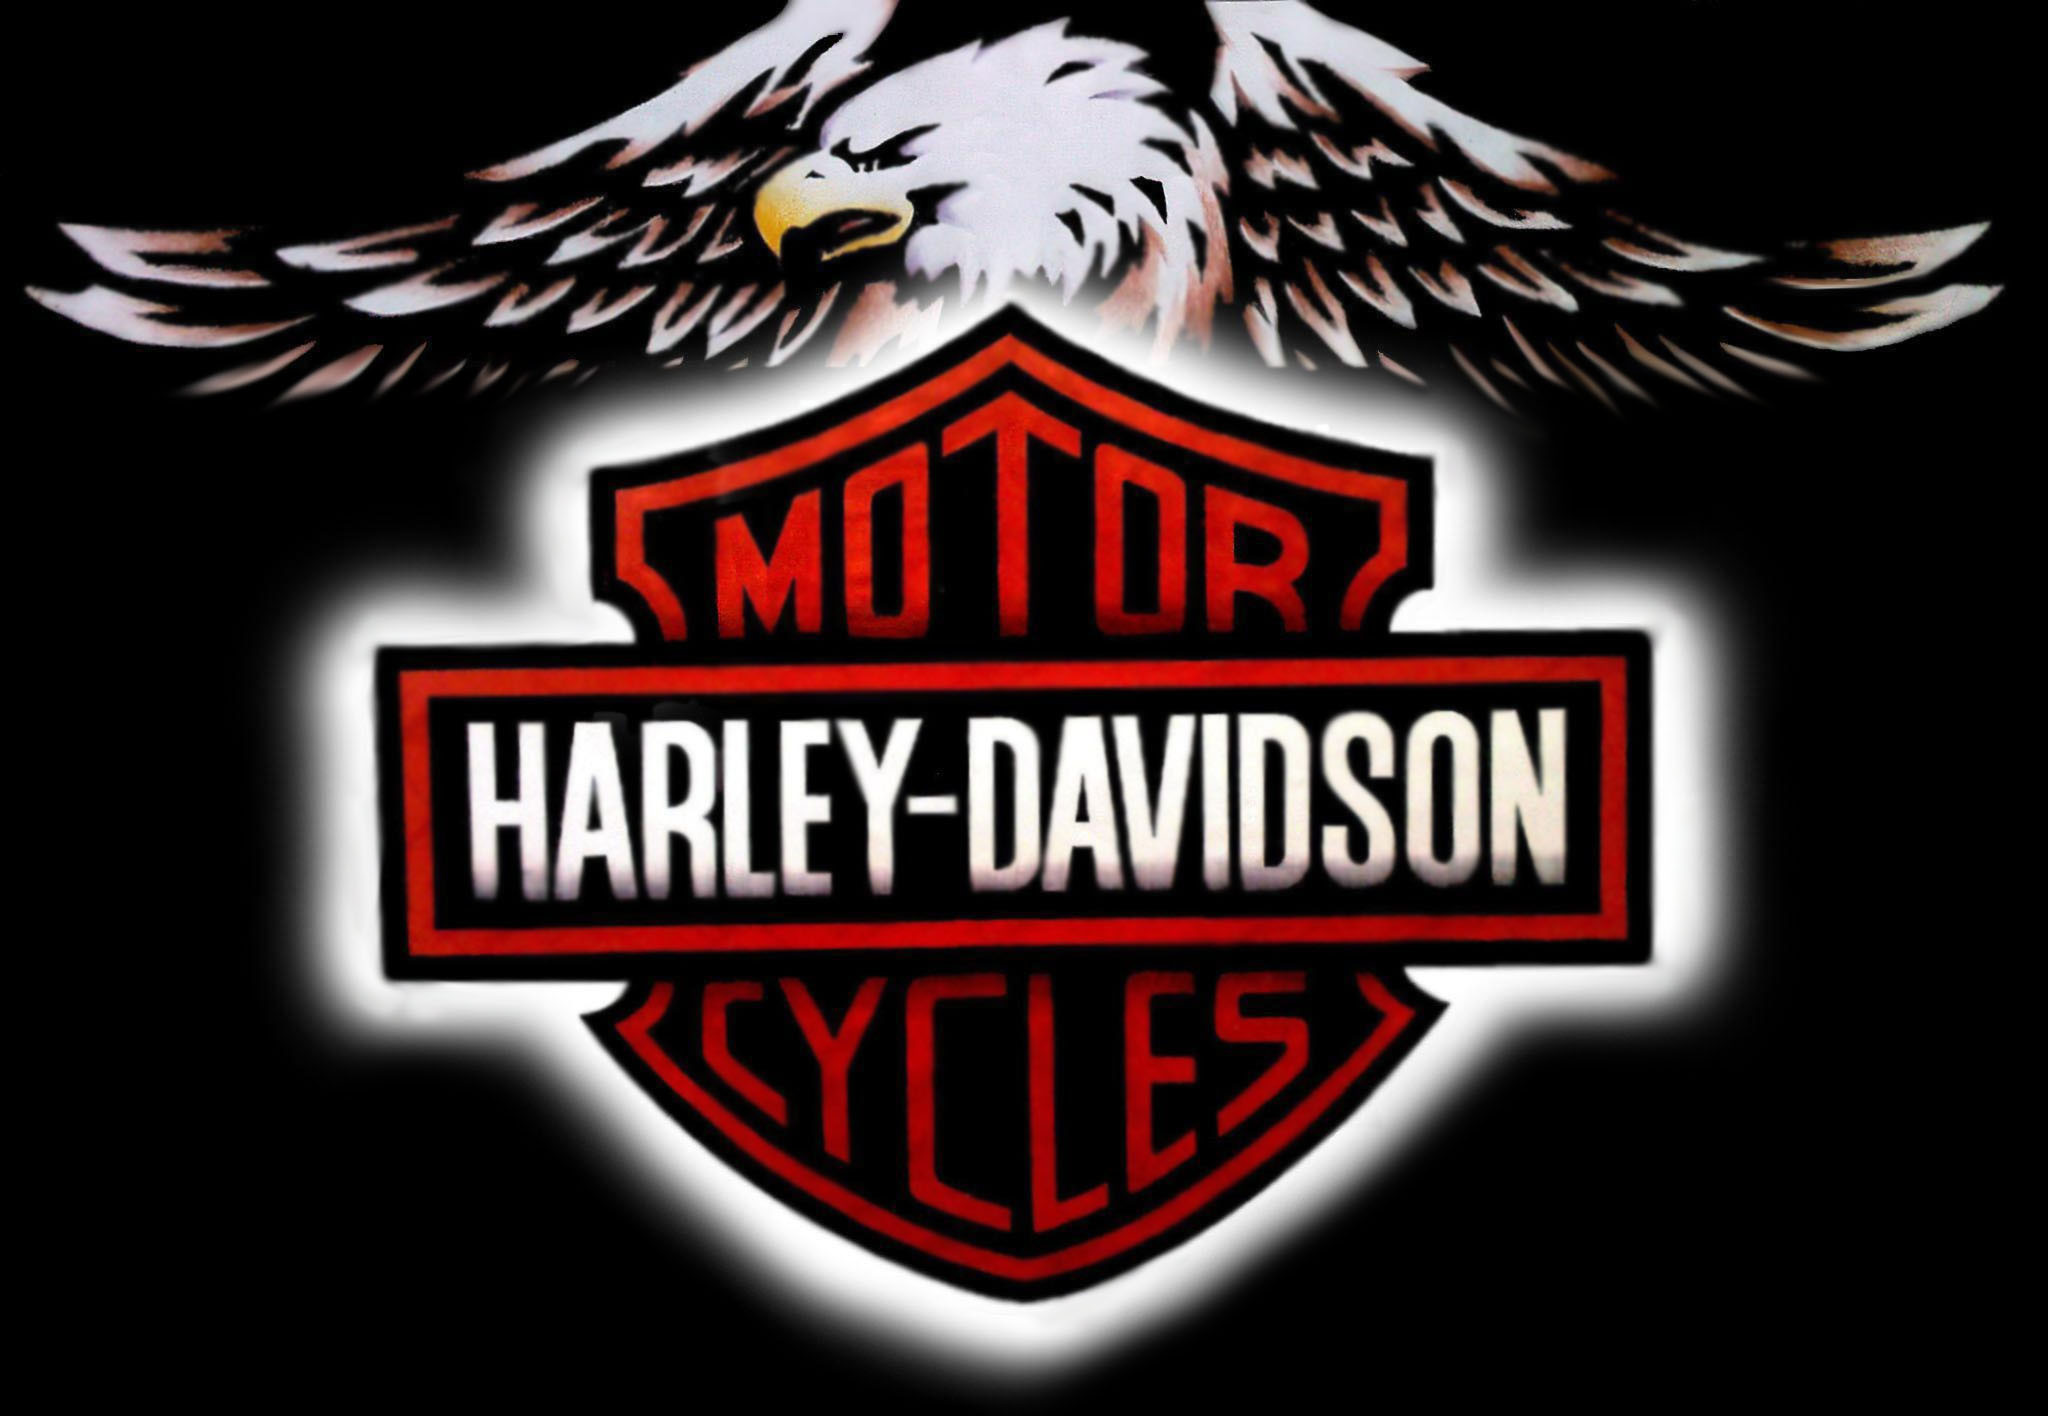 2048x1416 Wallpapers For Harley Davidson Logo With Flames Wallpaper